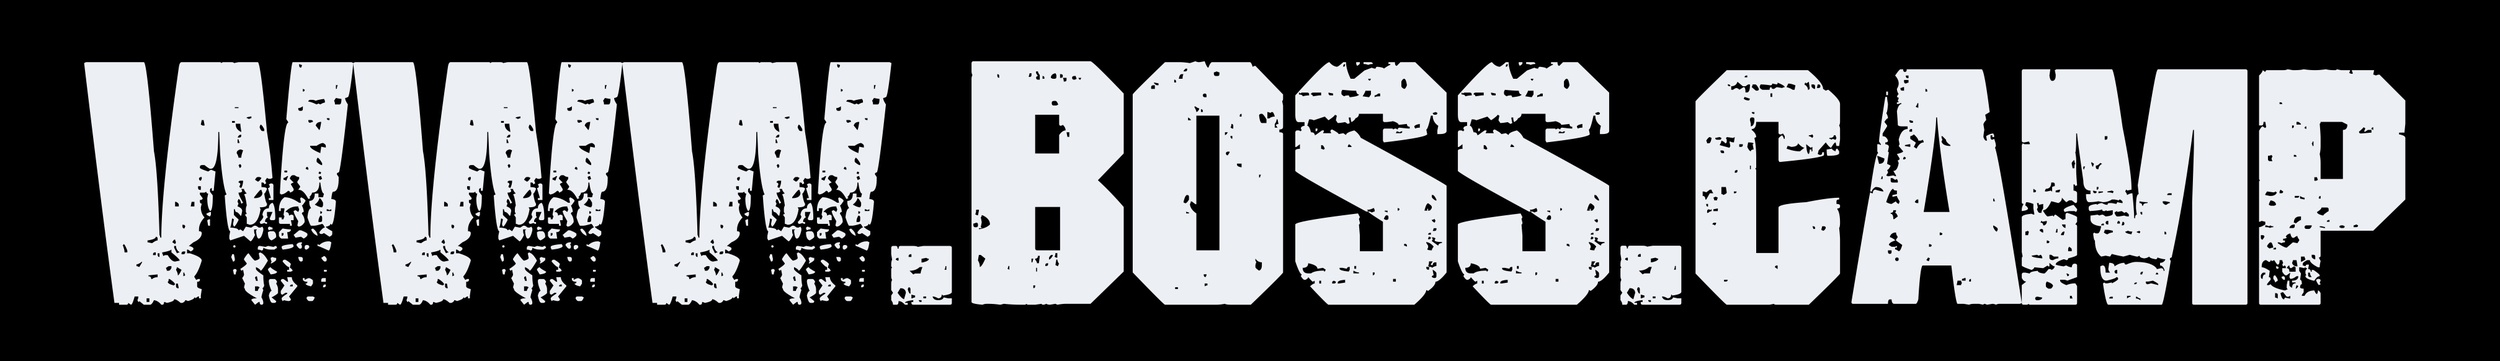 Get better employee performance in just an hour a week with www.boss.camp jpeg